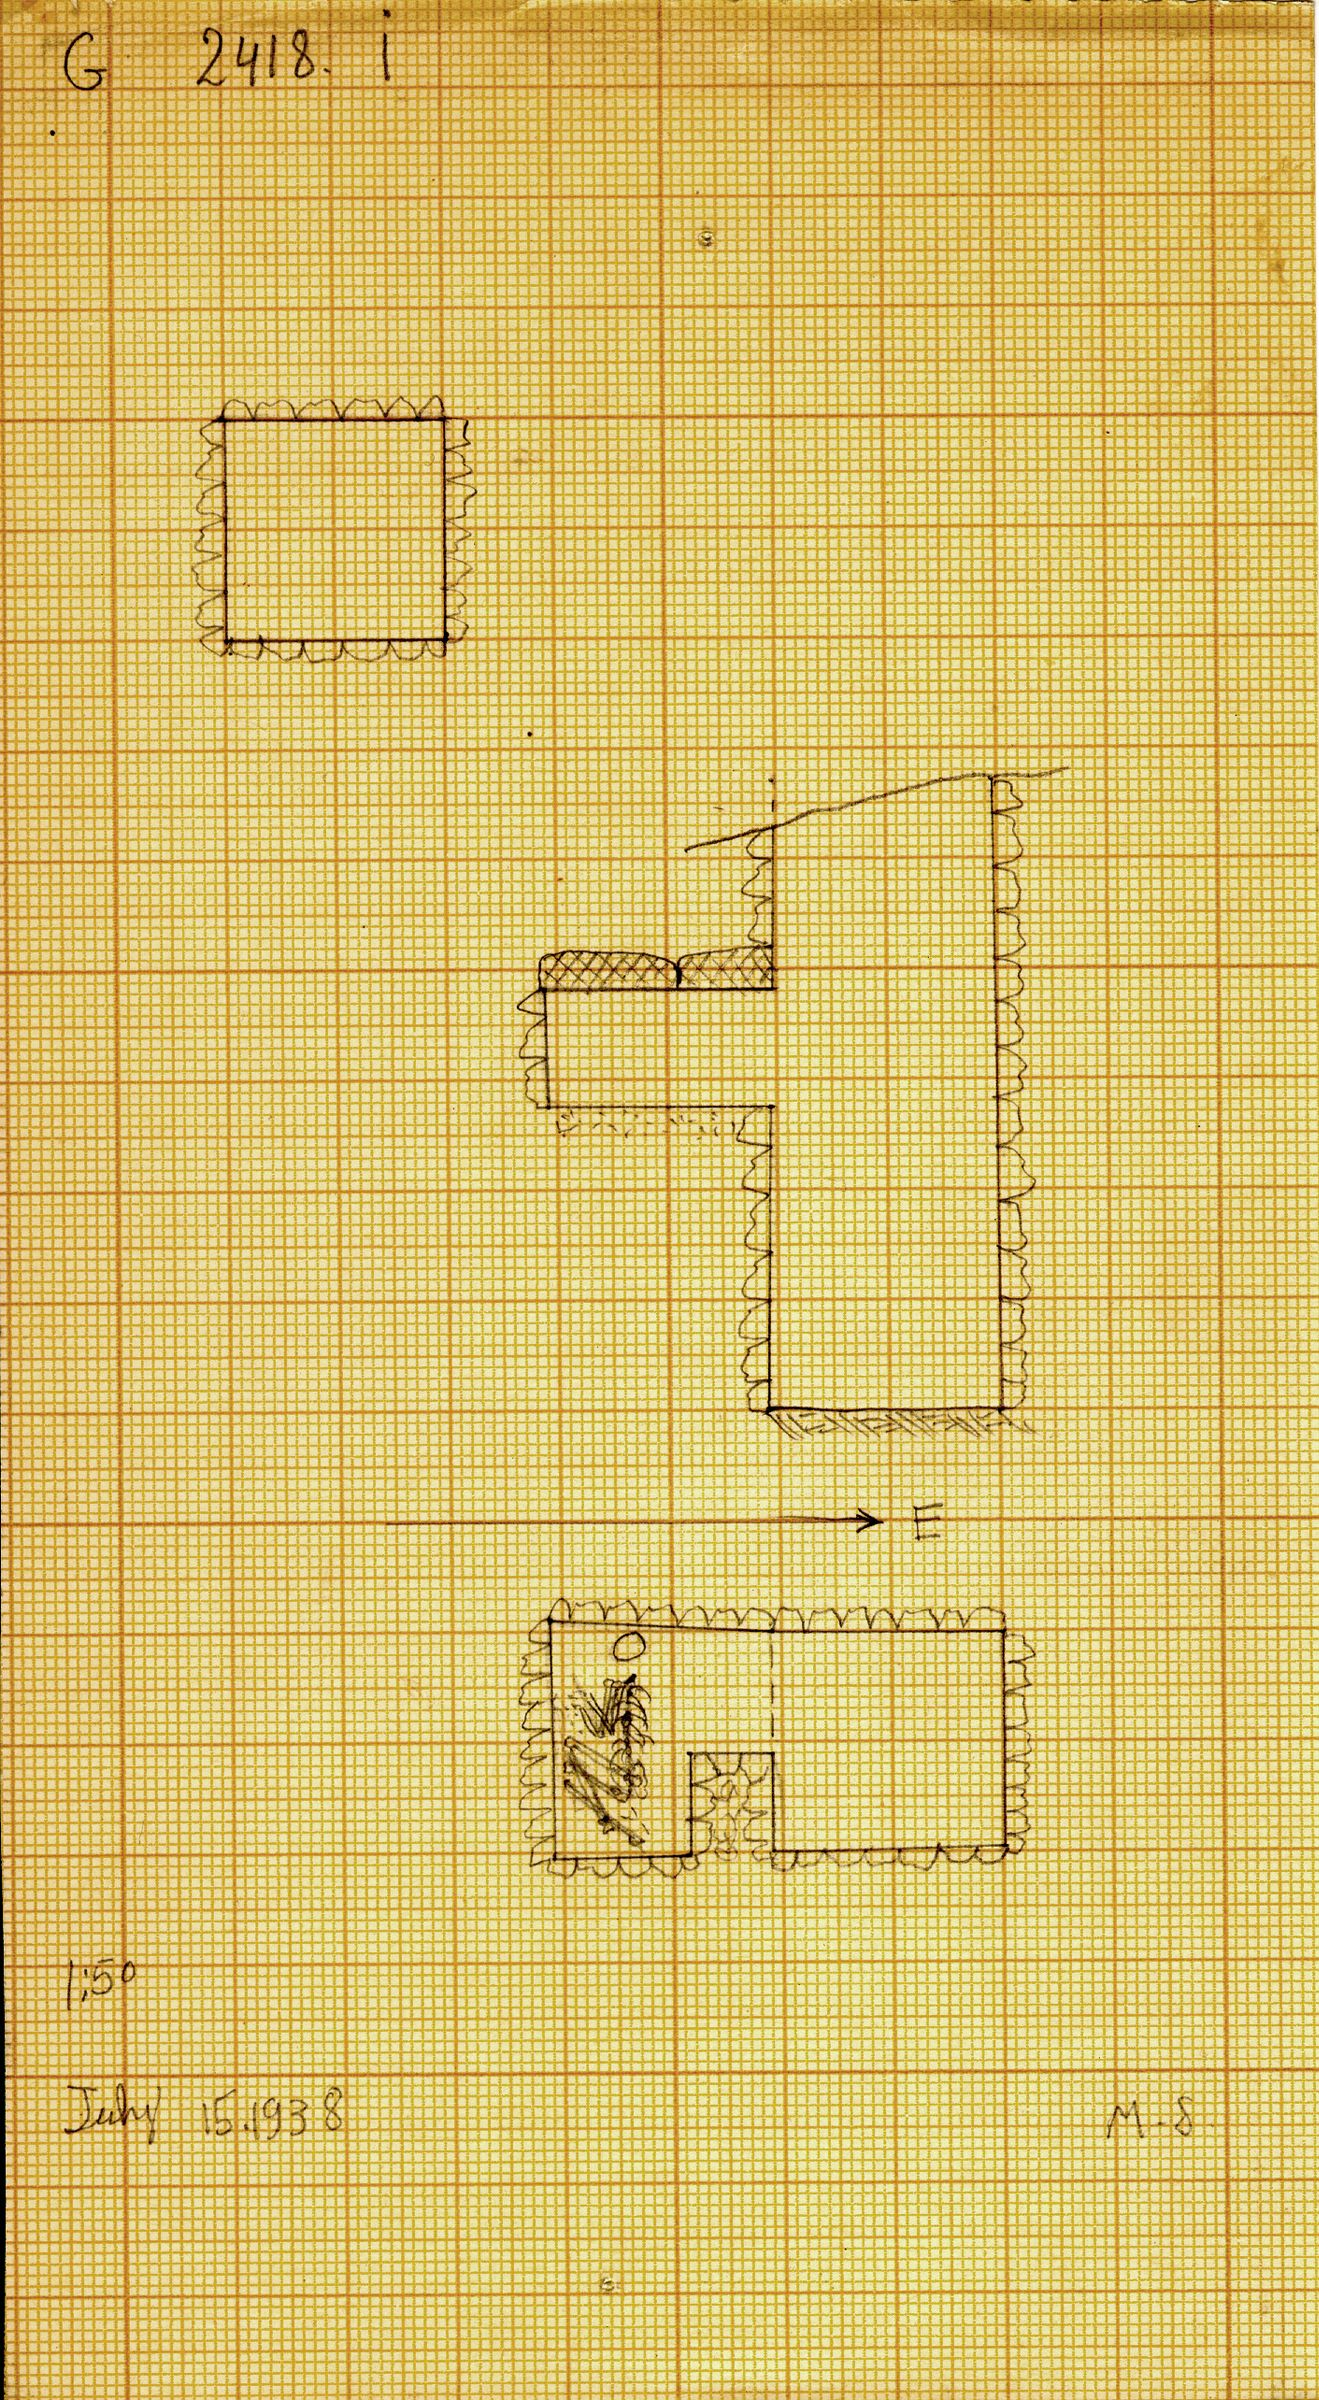 Maps and plans: G 2418, Shaft I